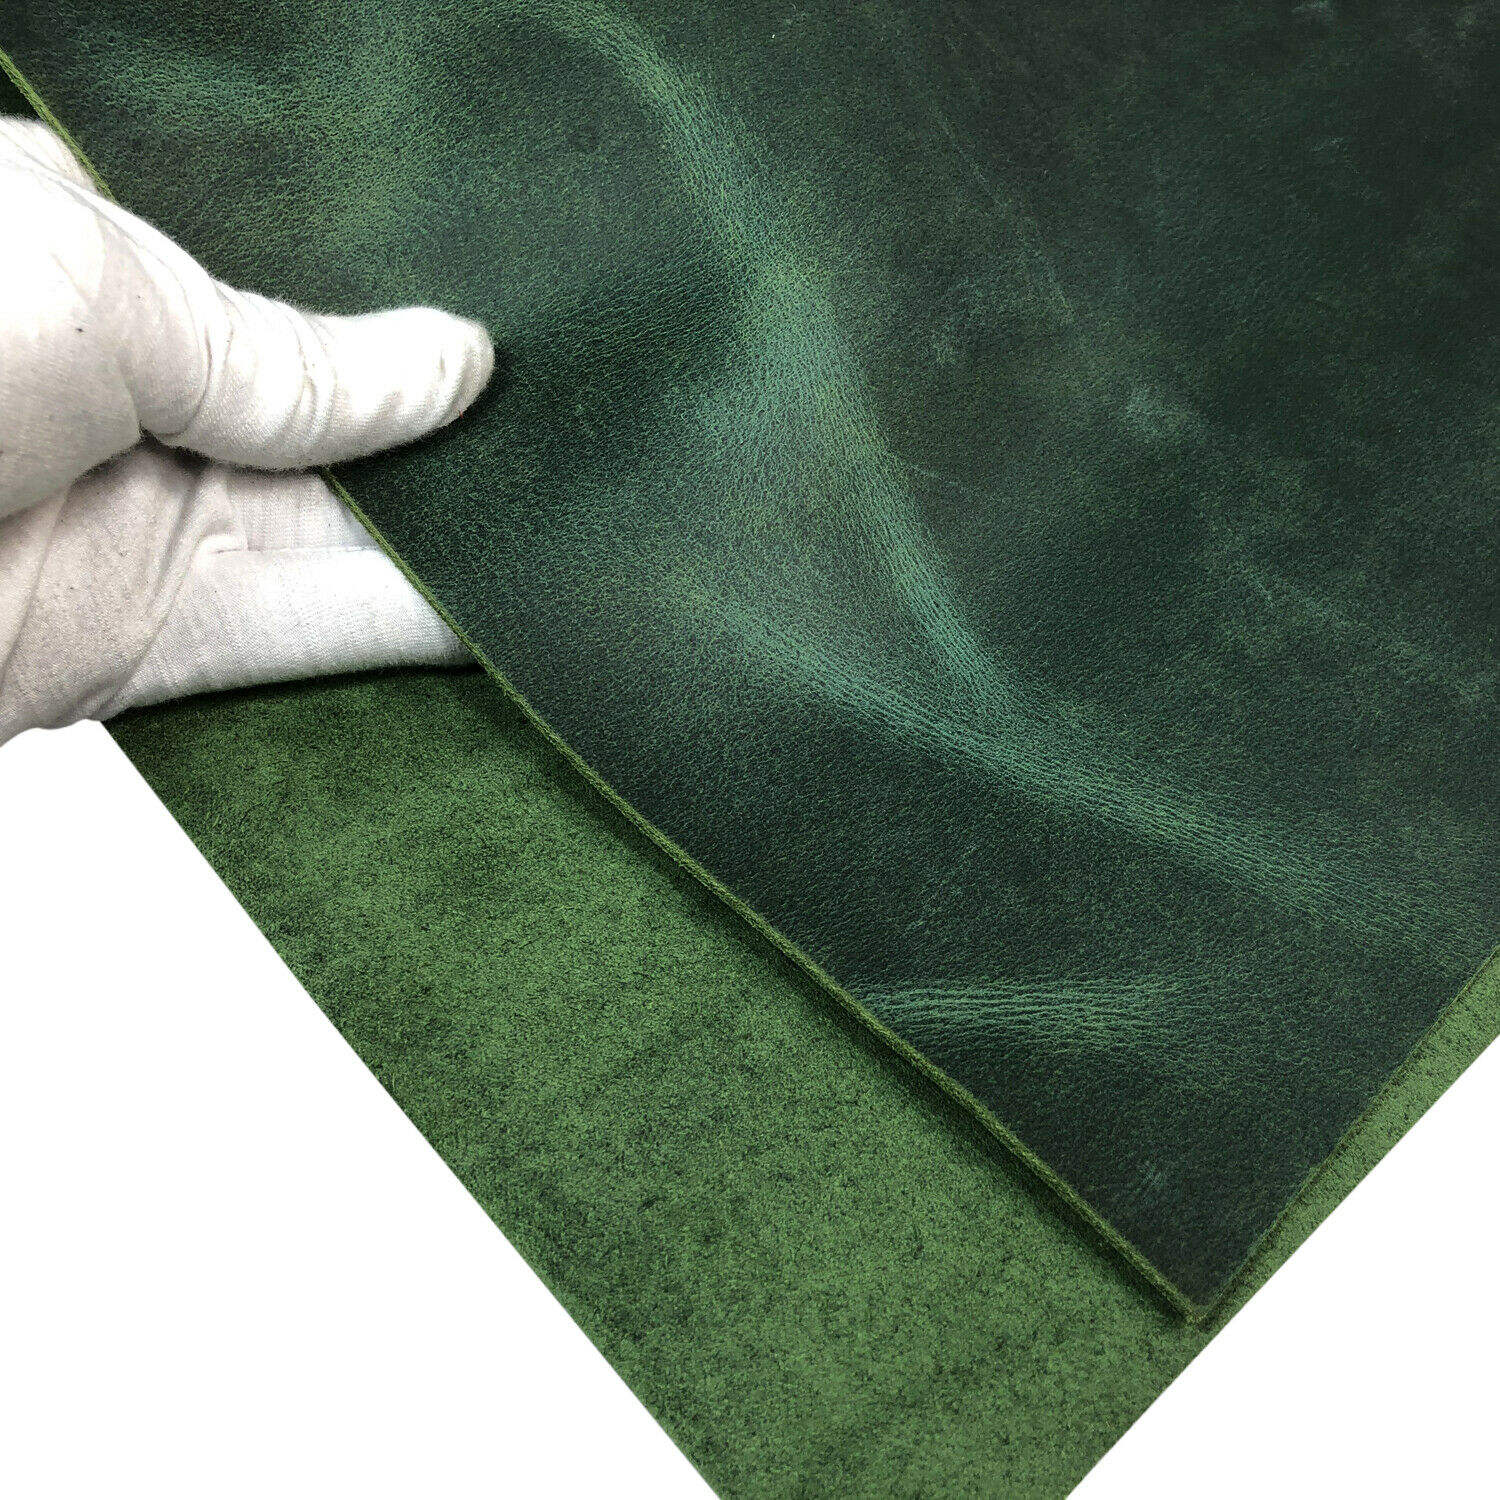 Vegetable Tanned Green Crazy Horse Leather 5-6 unzen (2.0mm) Thick Pre-Cut Cowhide